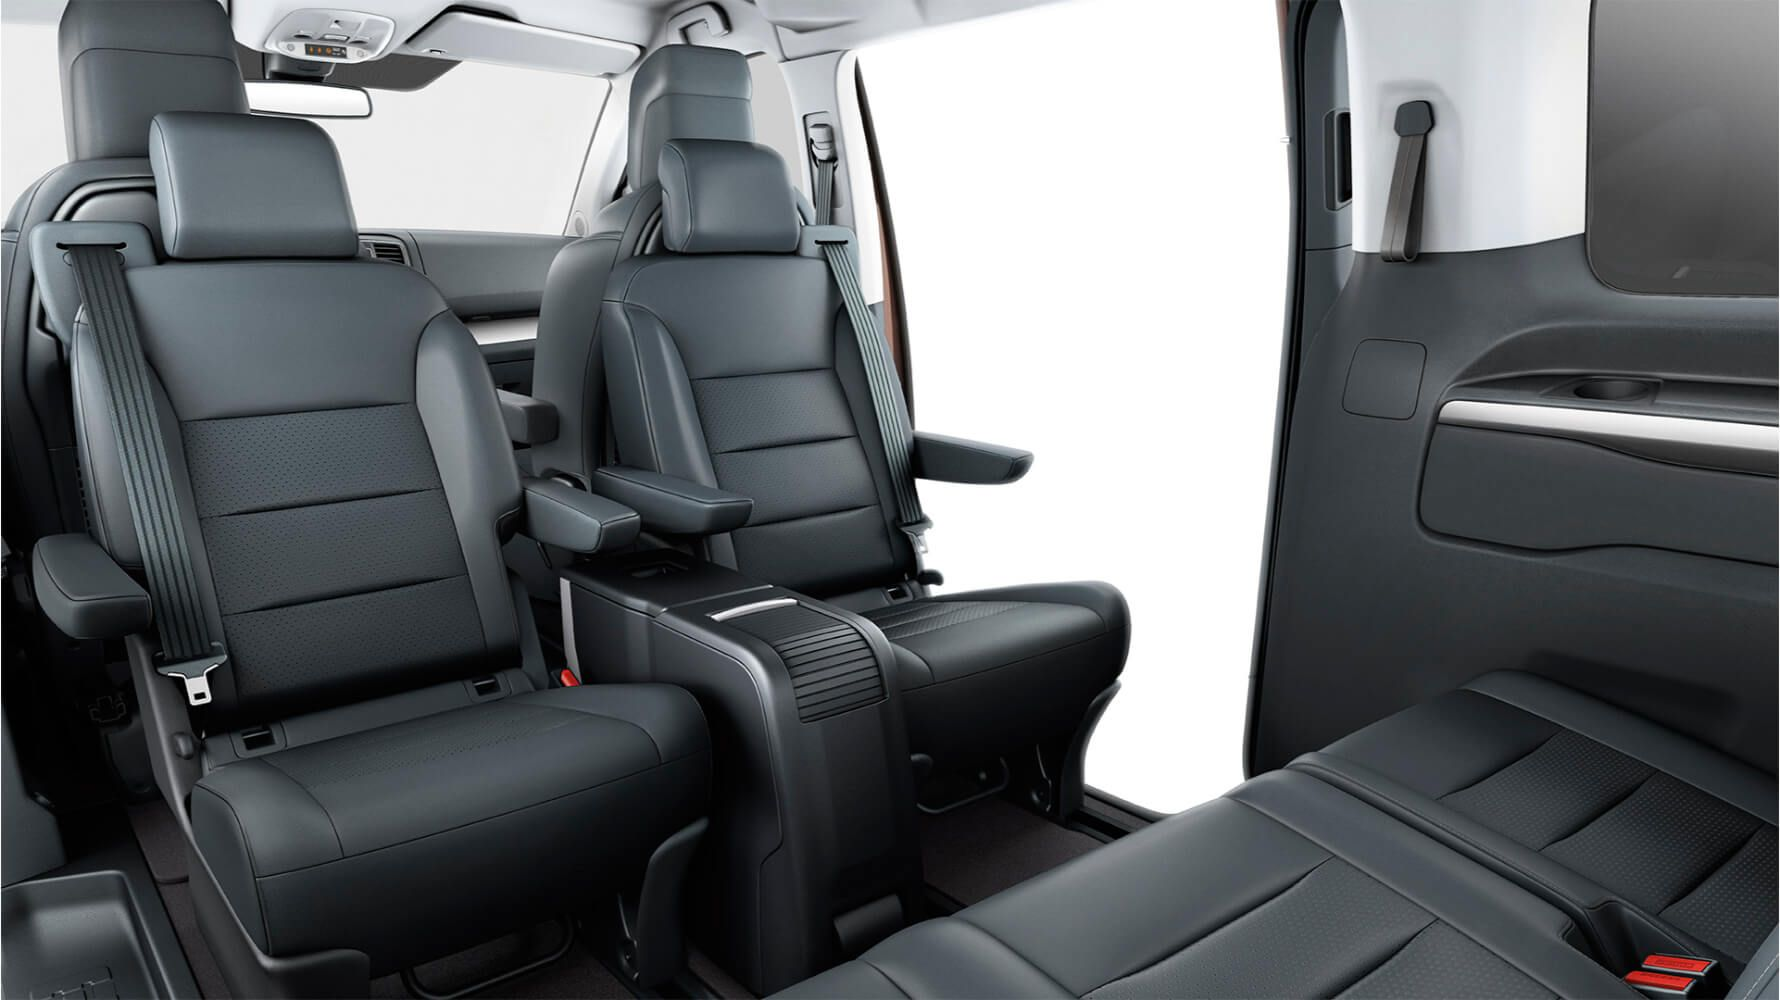 toyota_proace_verso_2019_gallery_011_full_tcm_3046_1703787